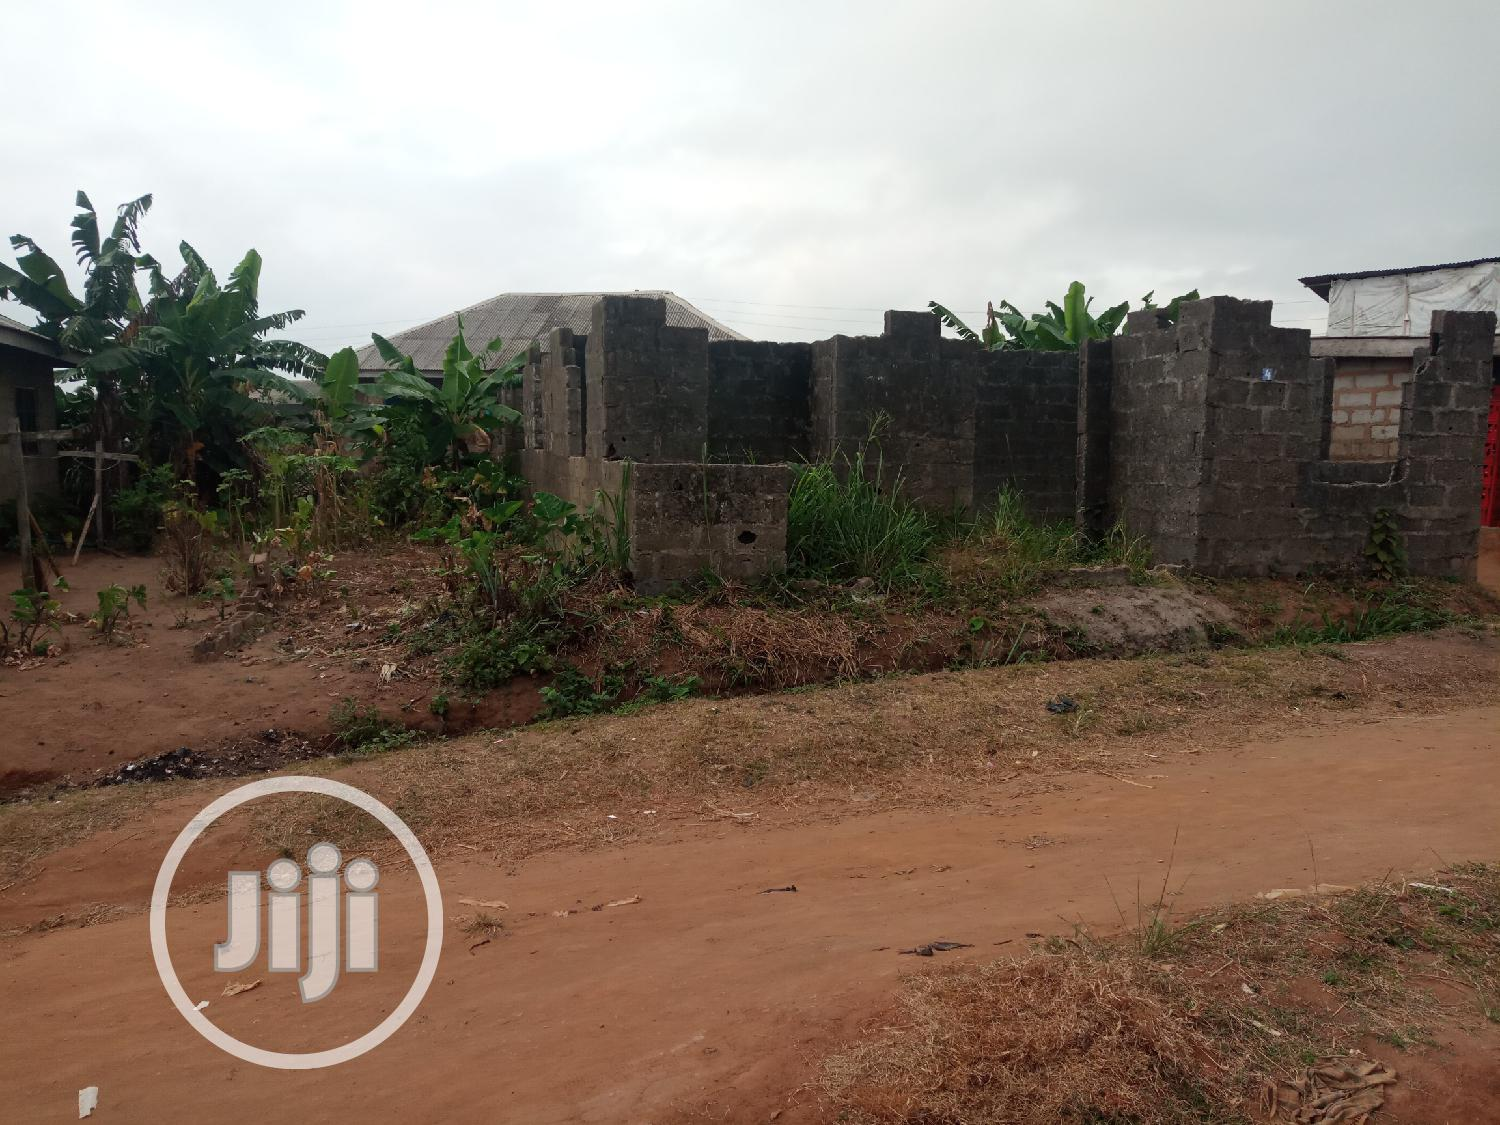 Half Plot of Land Measuring 30 by 120 at Ayrtoro Mopoljunct | Land & Plots For Sale for sale in Ipaja, Lagos State, Nigeria